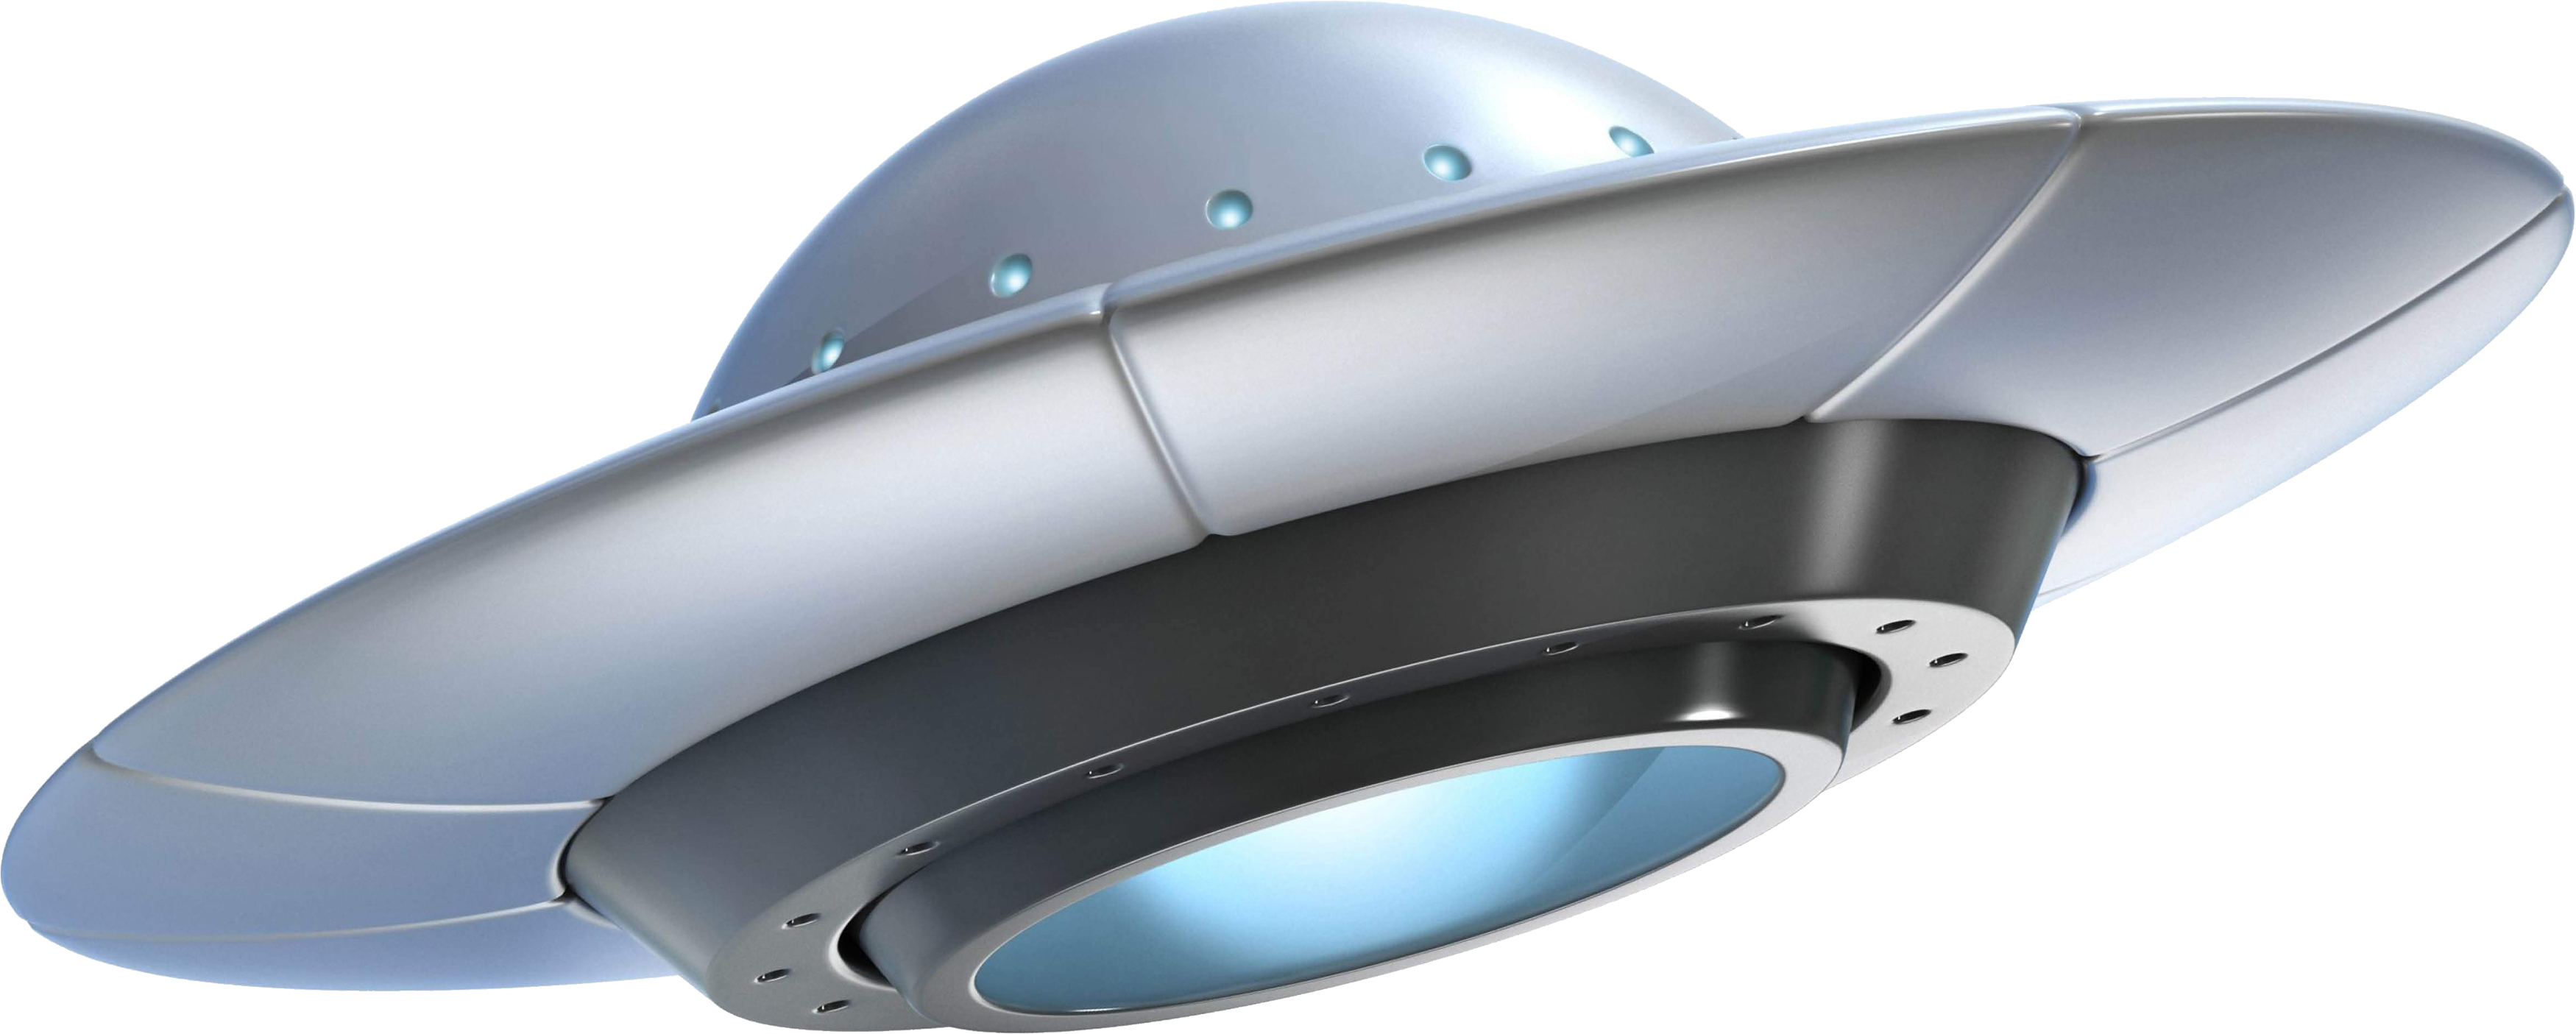 Ufo PNG Image.